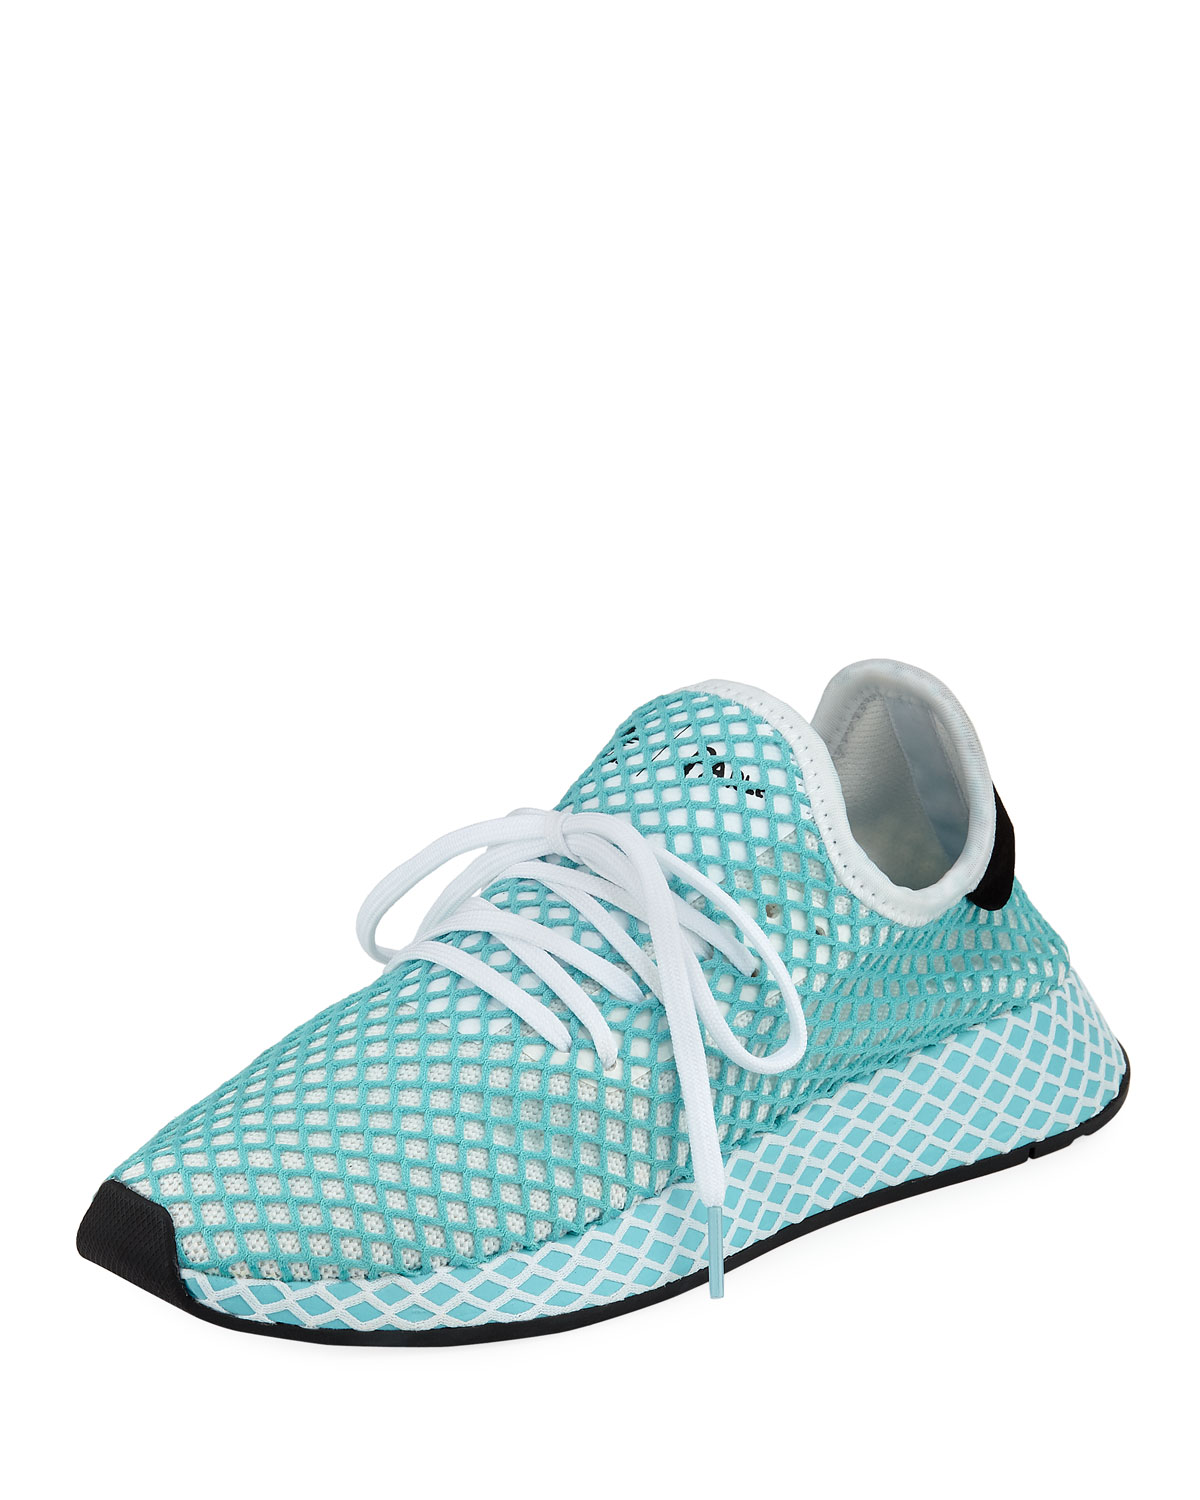 info for 188e2 635a9 AdidasDeerupt Parley Runner Sneakers